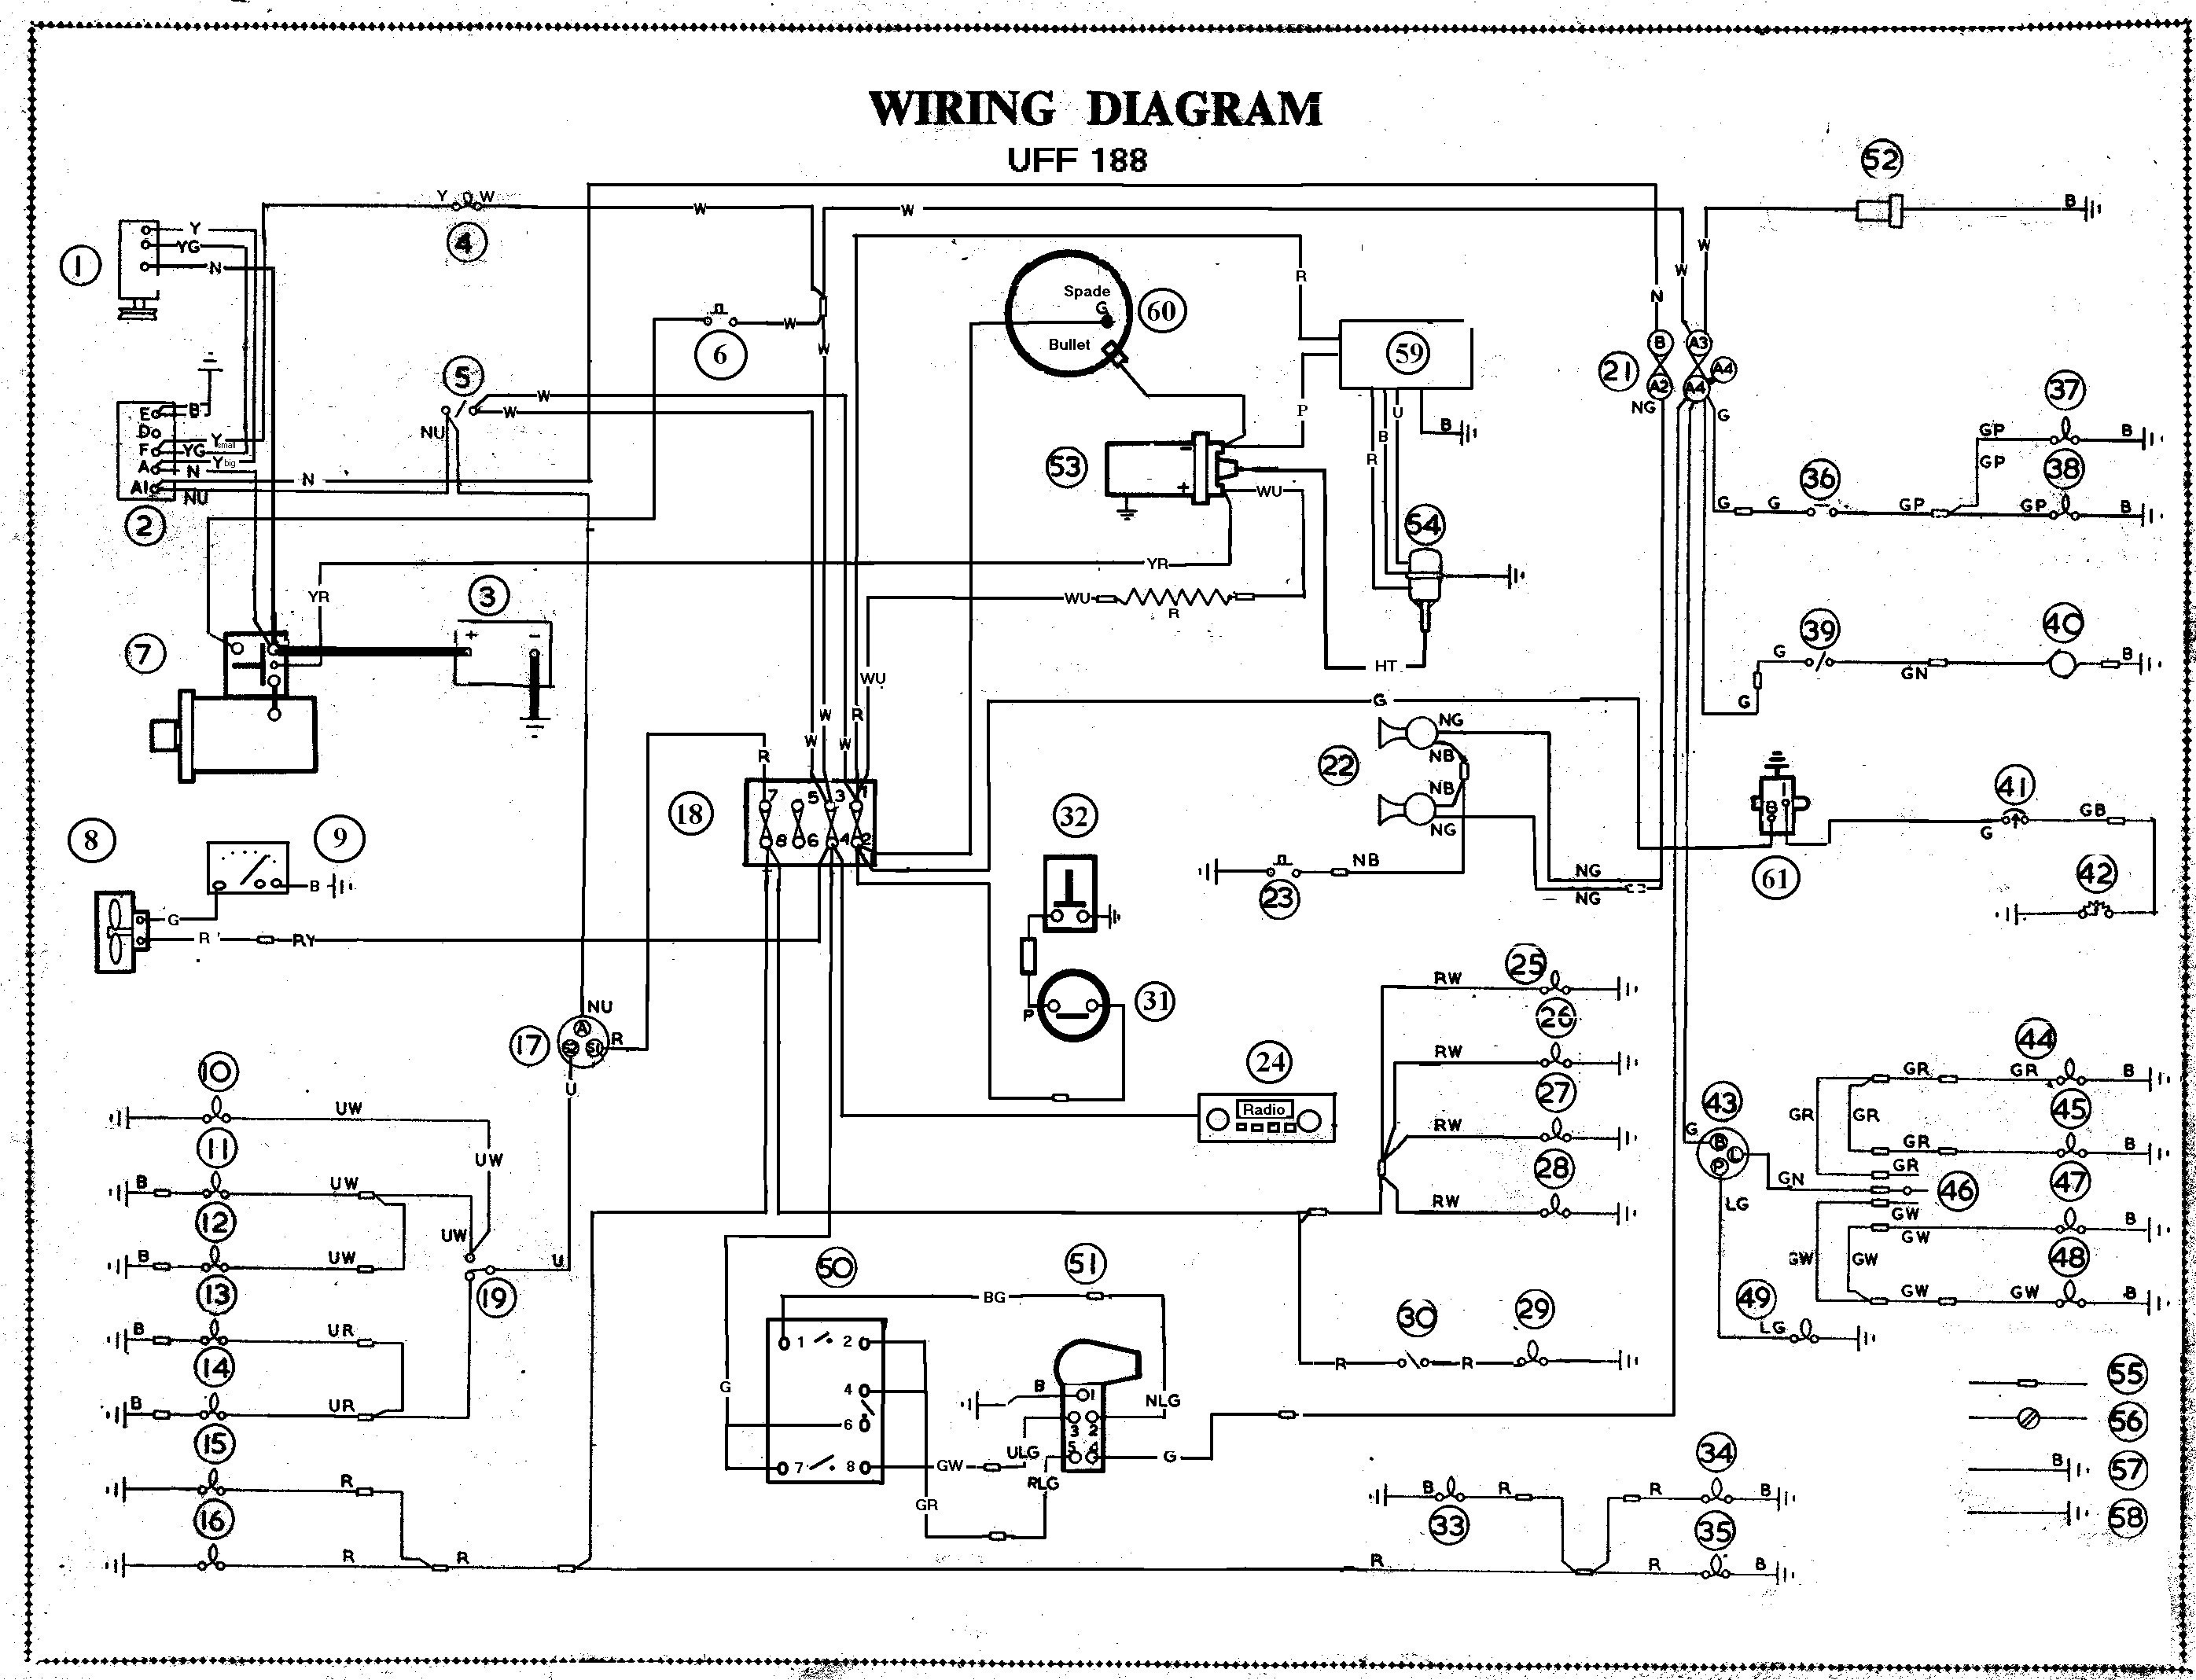 Diagram Of Car Electrical System Car Wiring Diagram Website Data Schematics Wiring Diagram • Of Diagram Of Car Electrical System